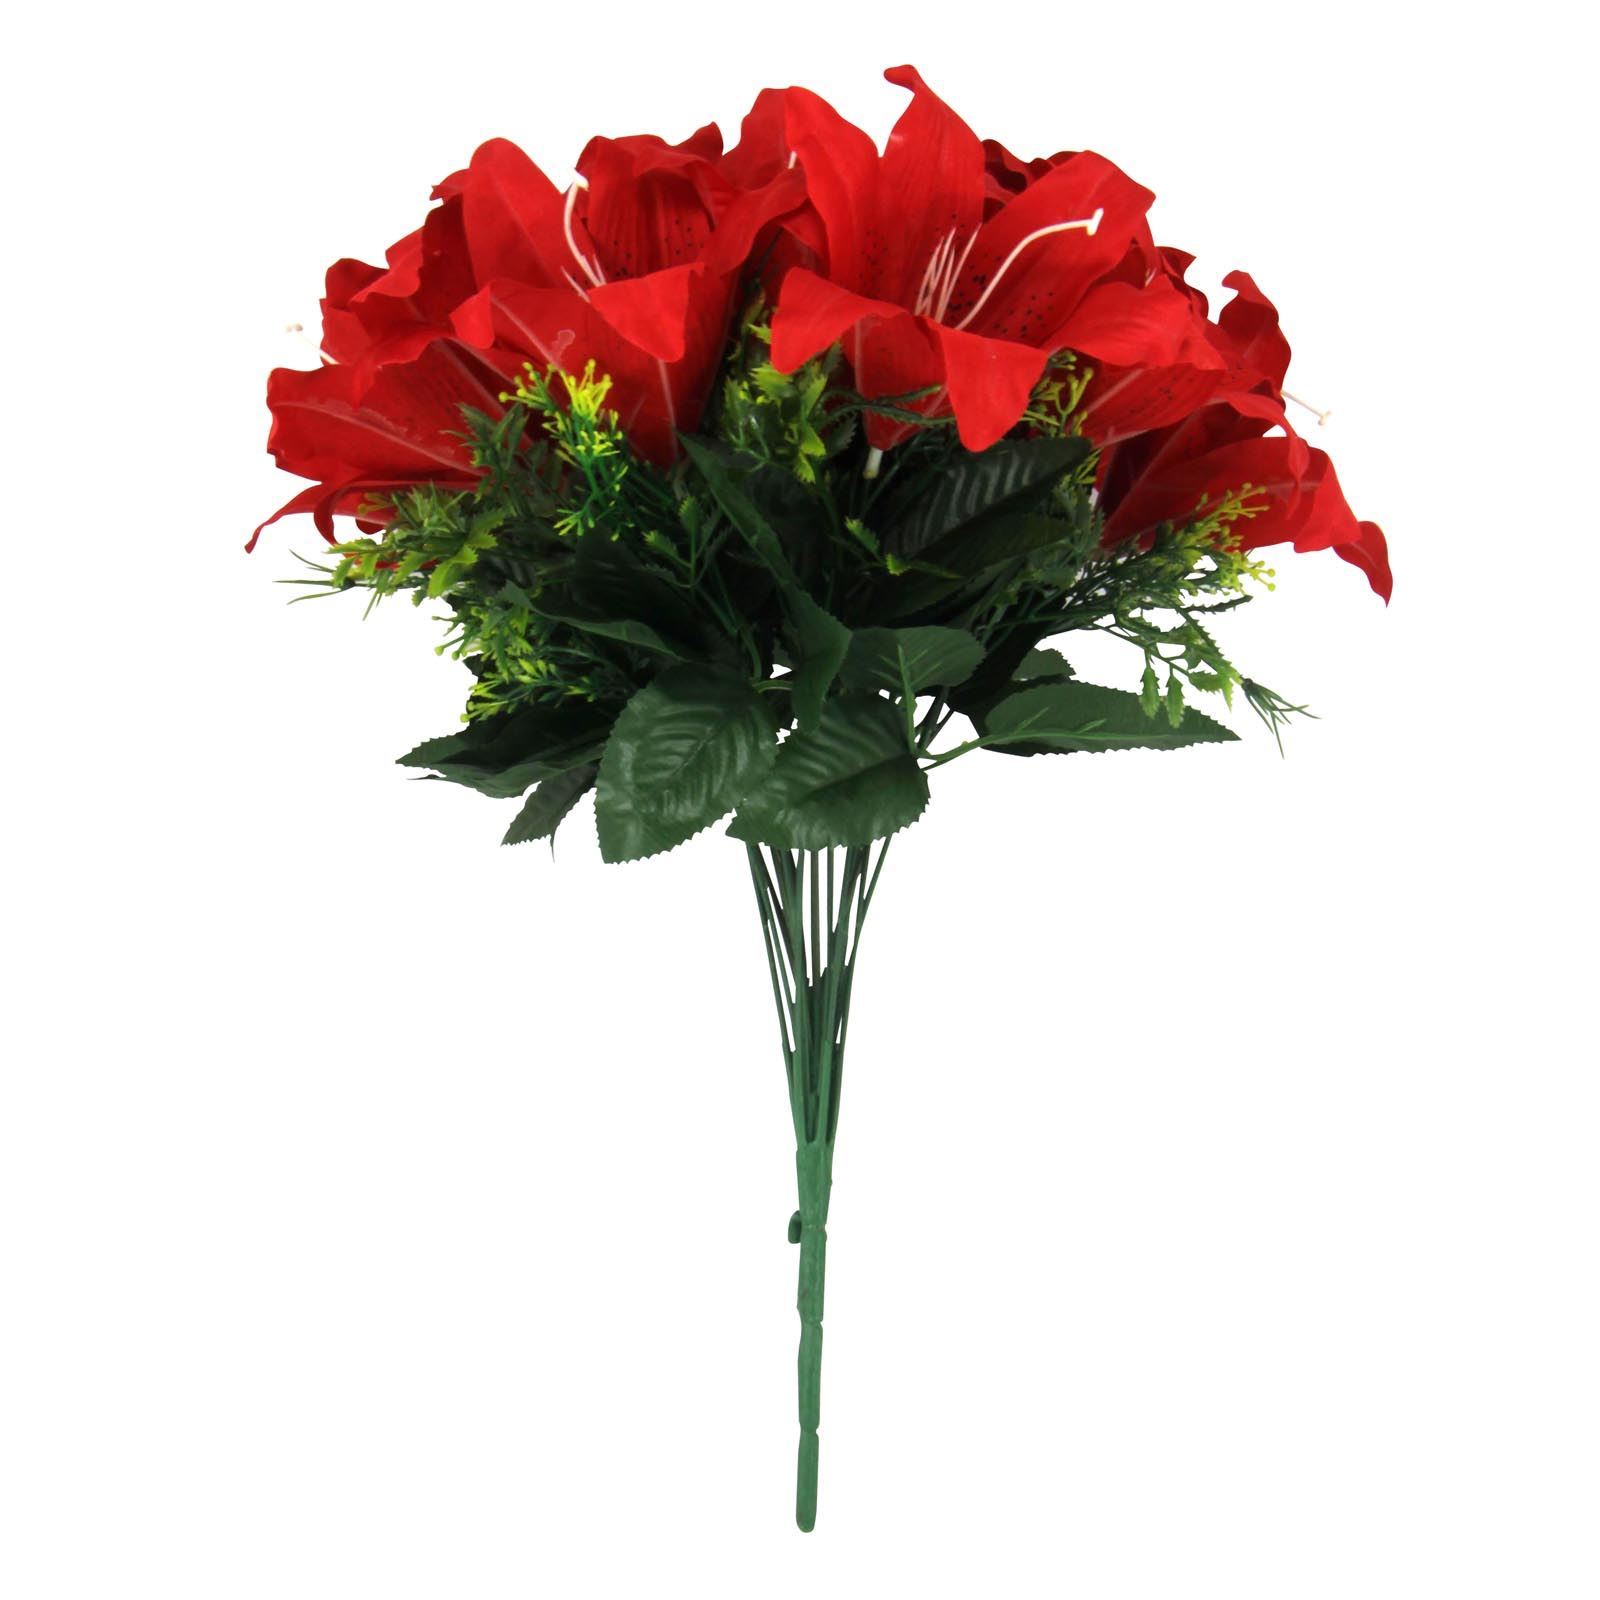 Giant 18 head premium lily bouquet artificial silk flowers fake giant 18 head premium lily bouquet artificial silk izmirmasajfo Image collections